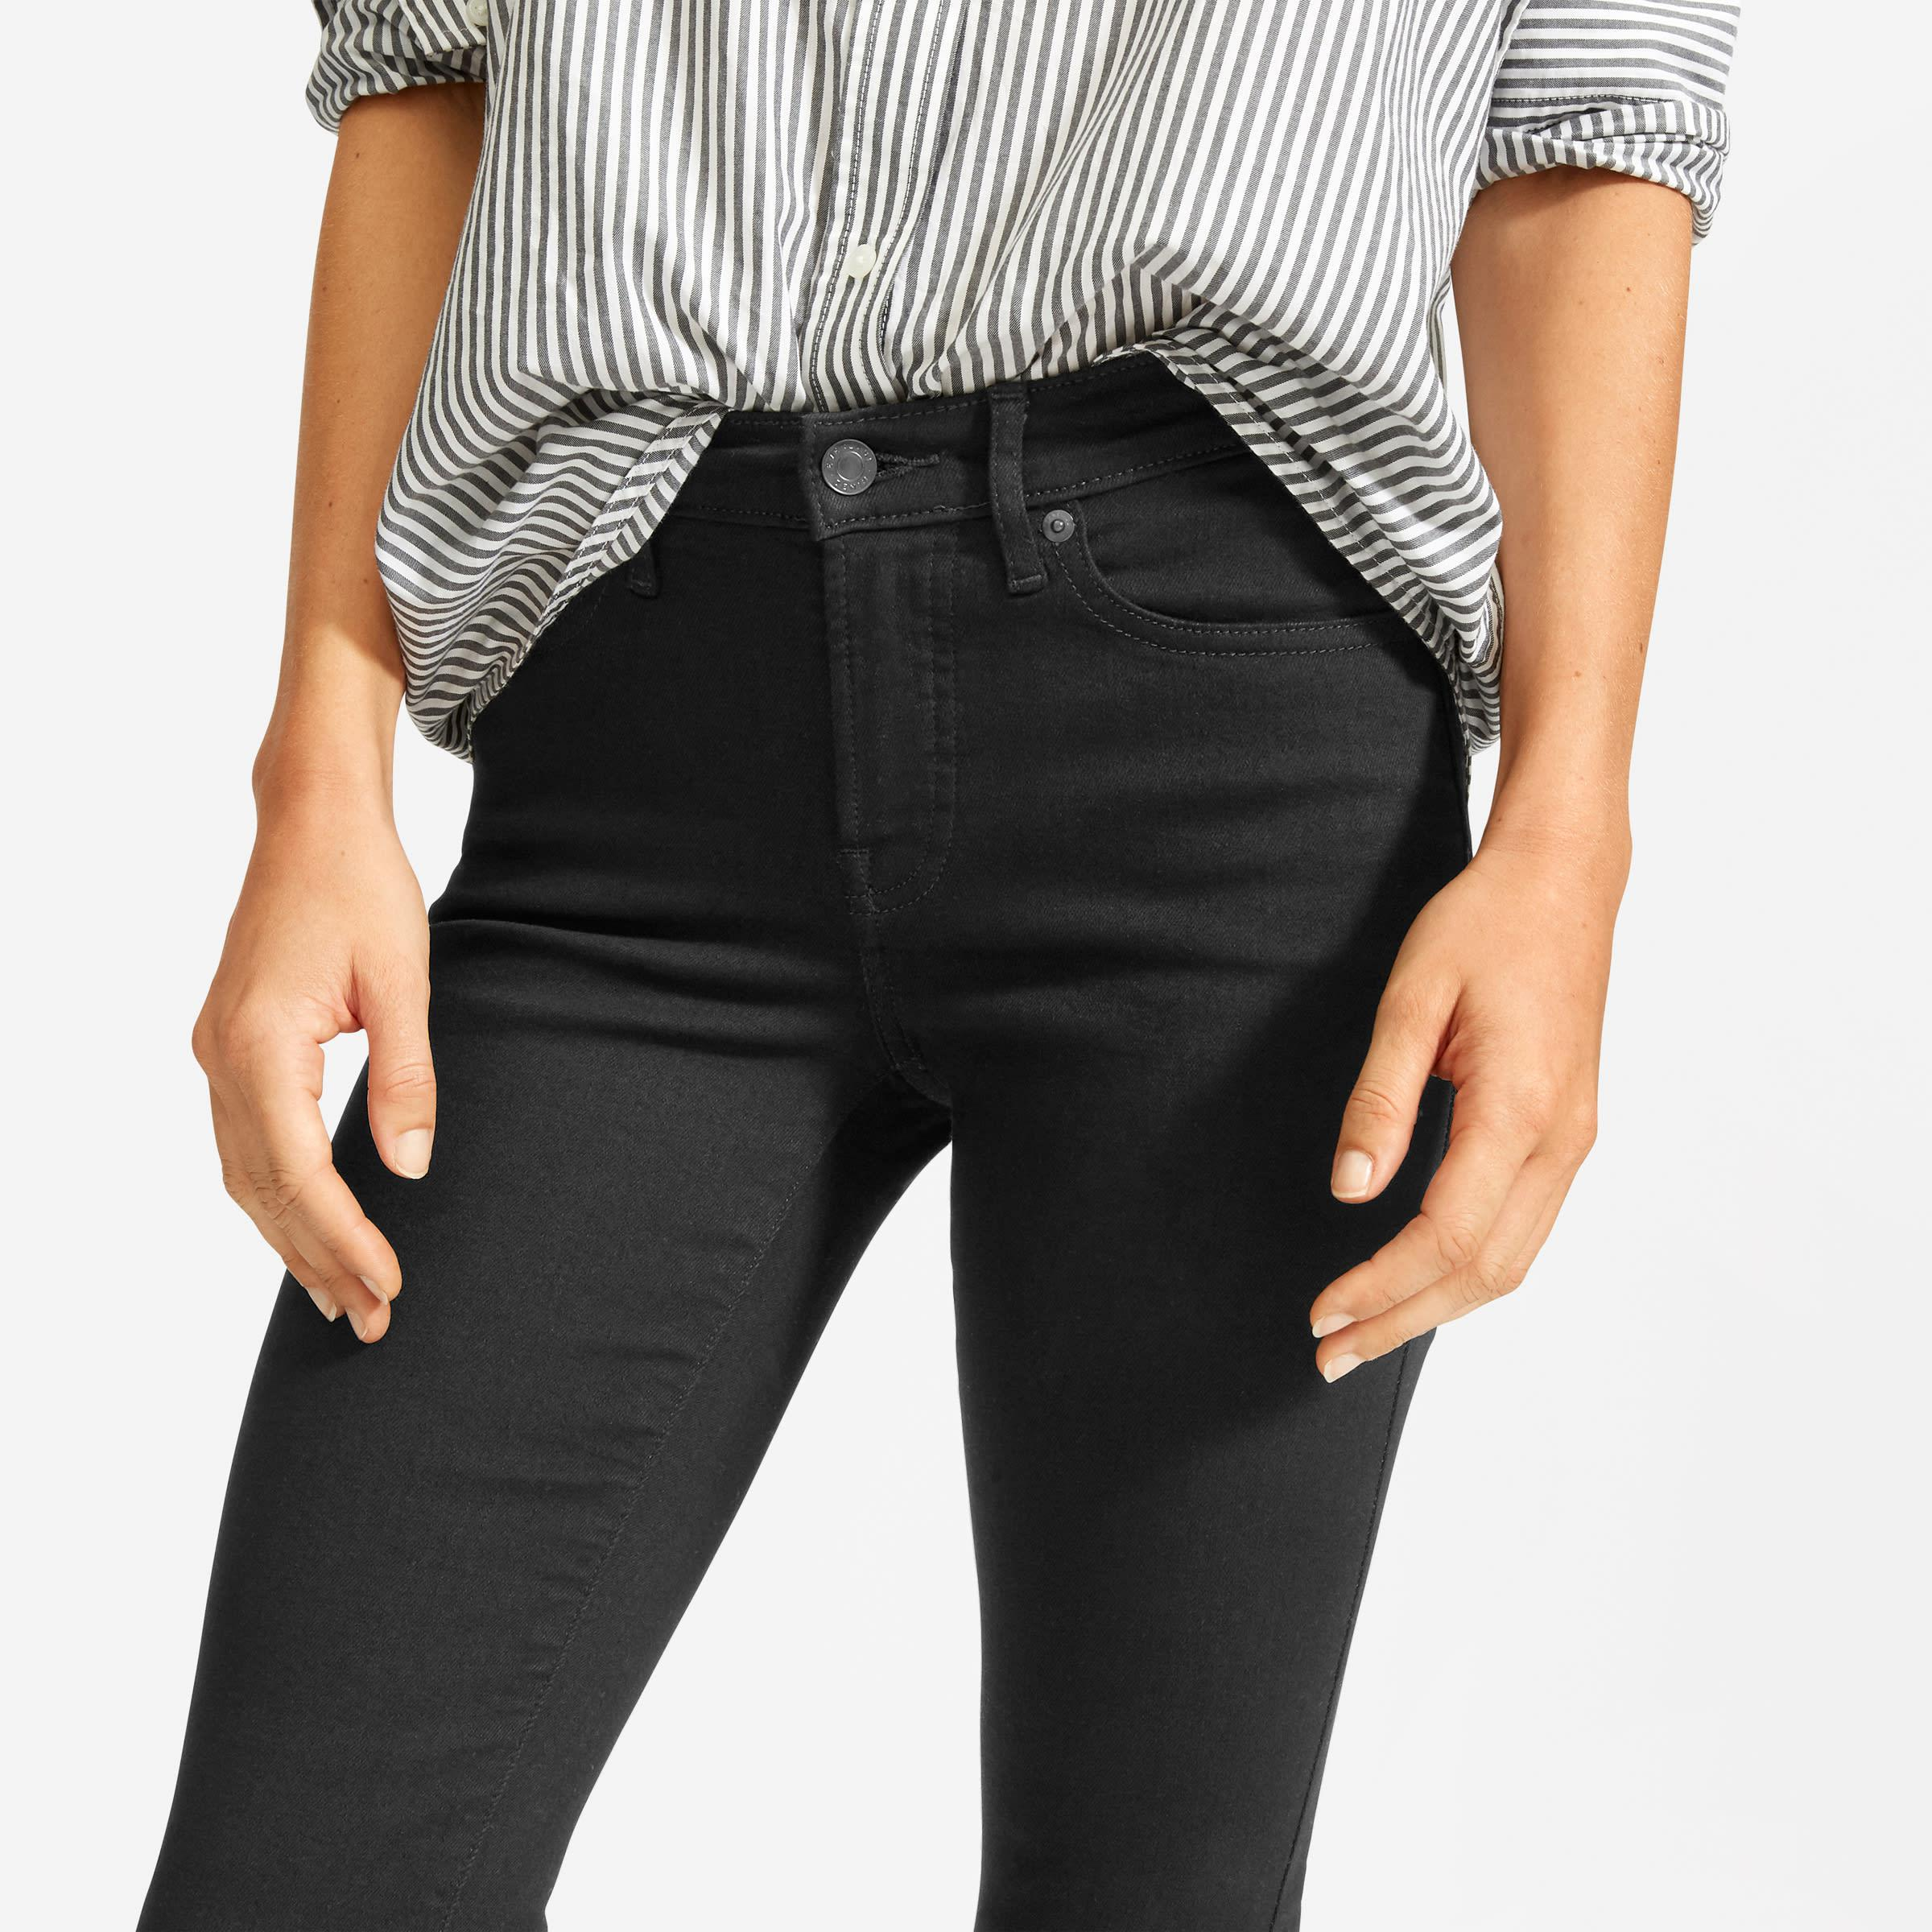 The Authentic Stretch Mid-Rise Skinny 2